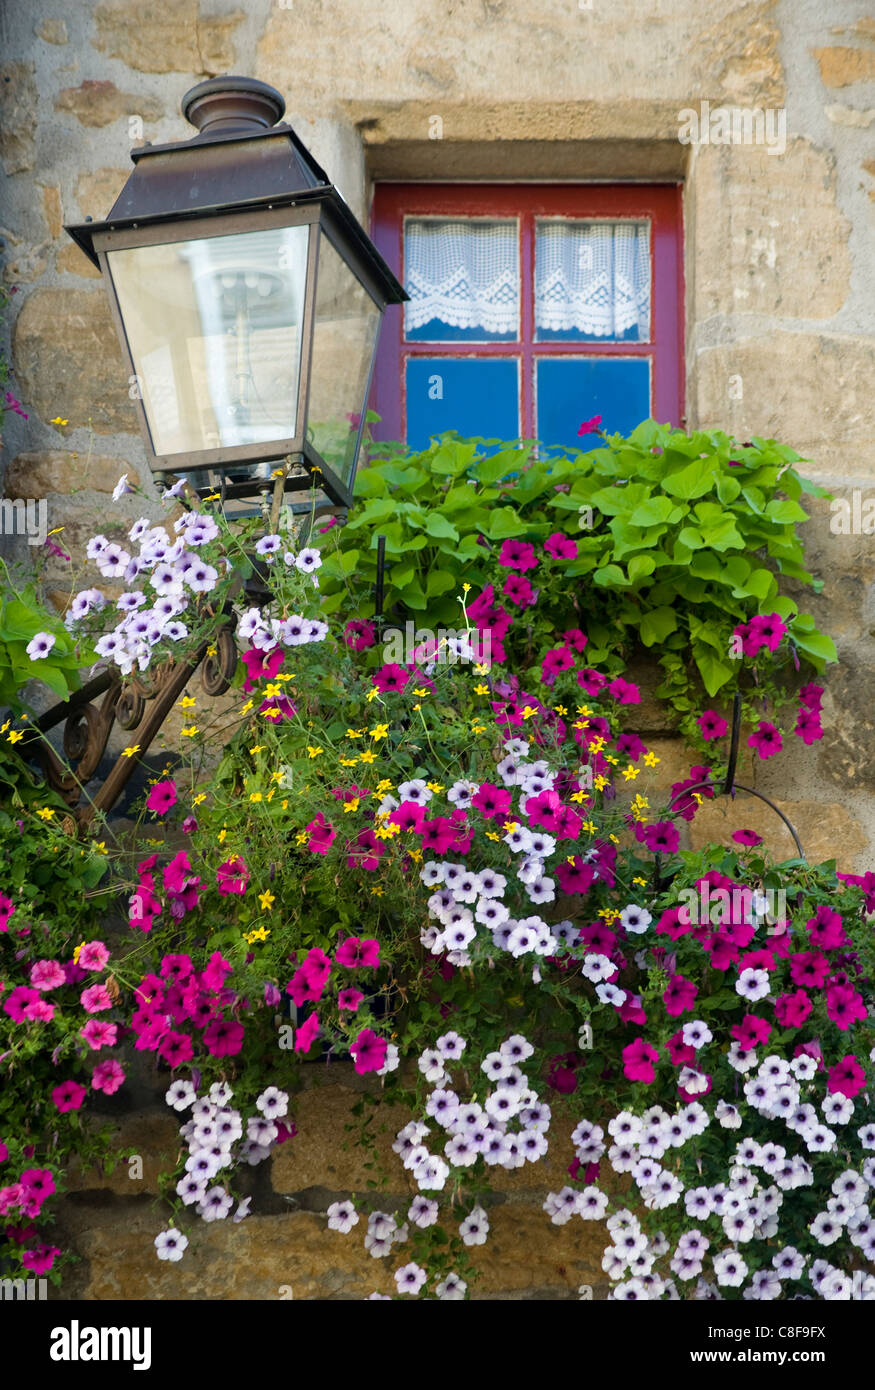 Purple petunias cascading from a window box in front of an old window in Sarlat, Dordogne, France Stock Photo